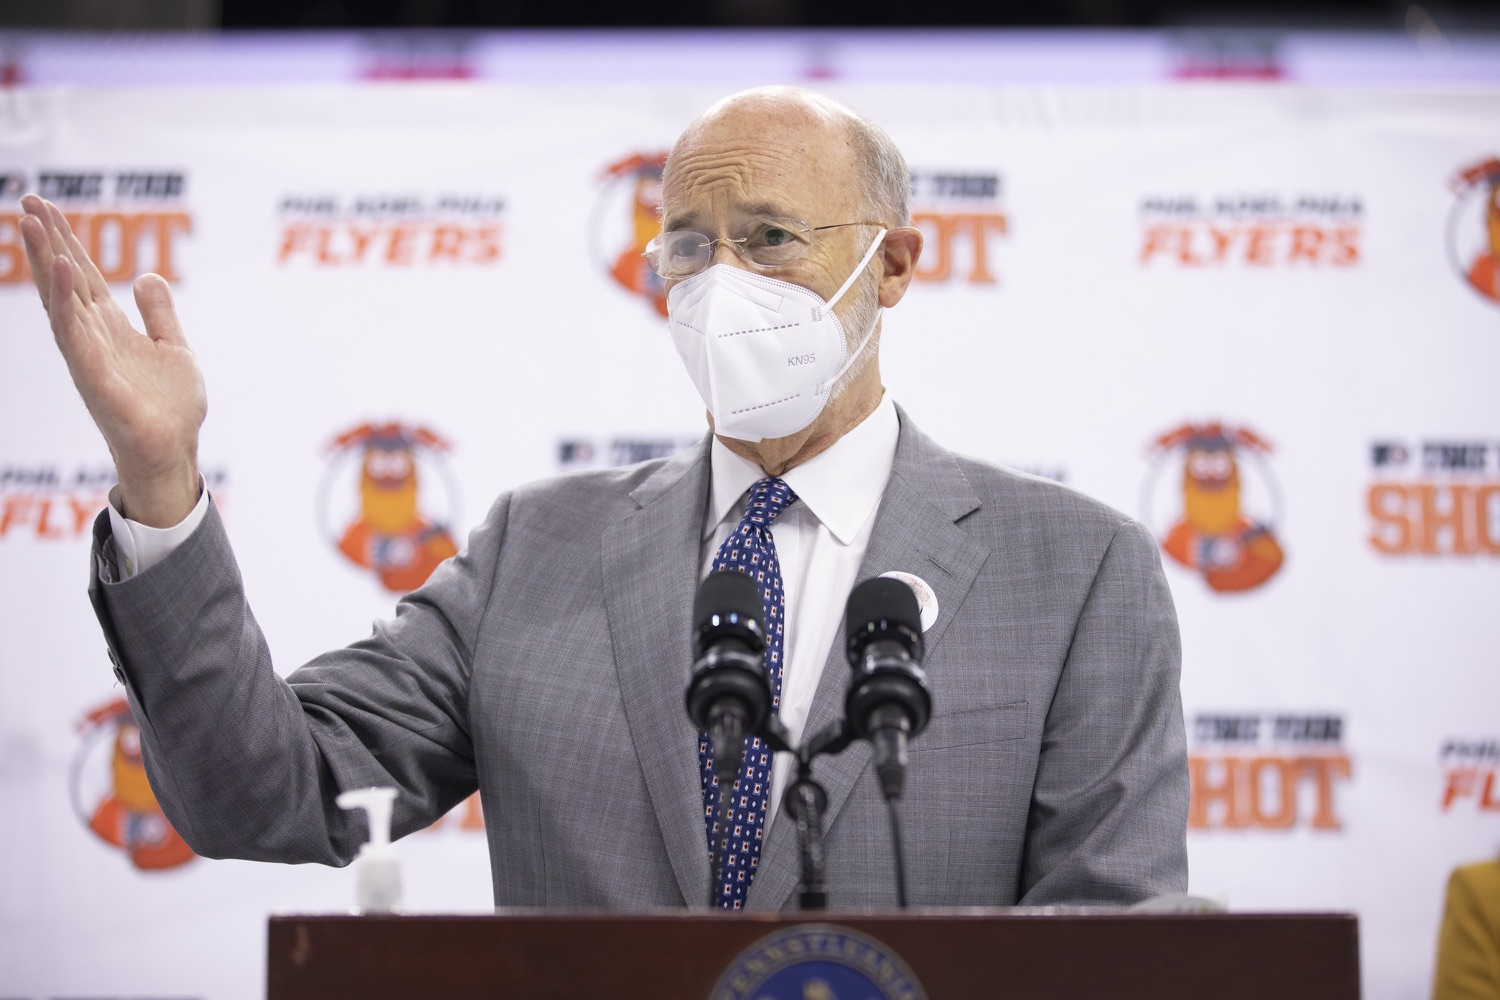 "<a href=""https://filesource.wostreaming.net/commonwealthofpa/photo/18727_gov_vaccines_dz_005.JPG"" target=""_blank"">⇣ Download Photo<br></a>Pennsylvania Governor Tom Wolf speaking with the press.   Governor Tom Wolf today visited the Philadelphia Flyers organization at the Wells Fargo Center in Philadelphia to discuss COVID-19 vaccine efforts in Pennsylvania. The Flyers recently launched a comprehensive COVID-19 vaccine campaign, Take Your Shot, encouraging Pennsylvanians to get vaccinated.  Philadelphia, PA  MAY 3, 2021"